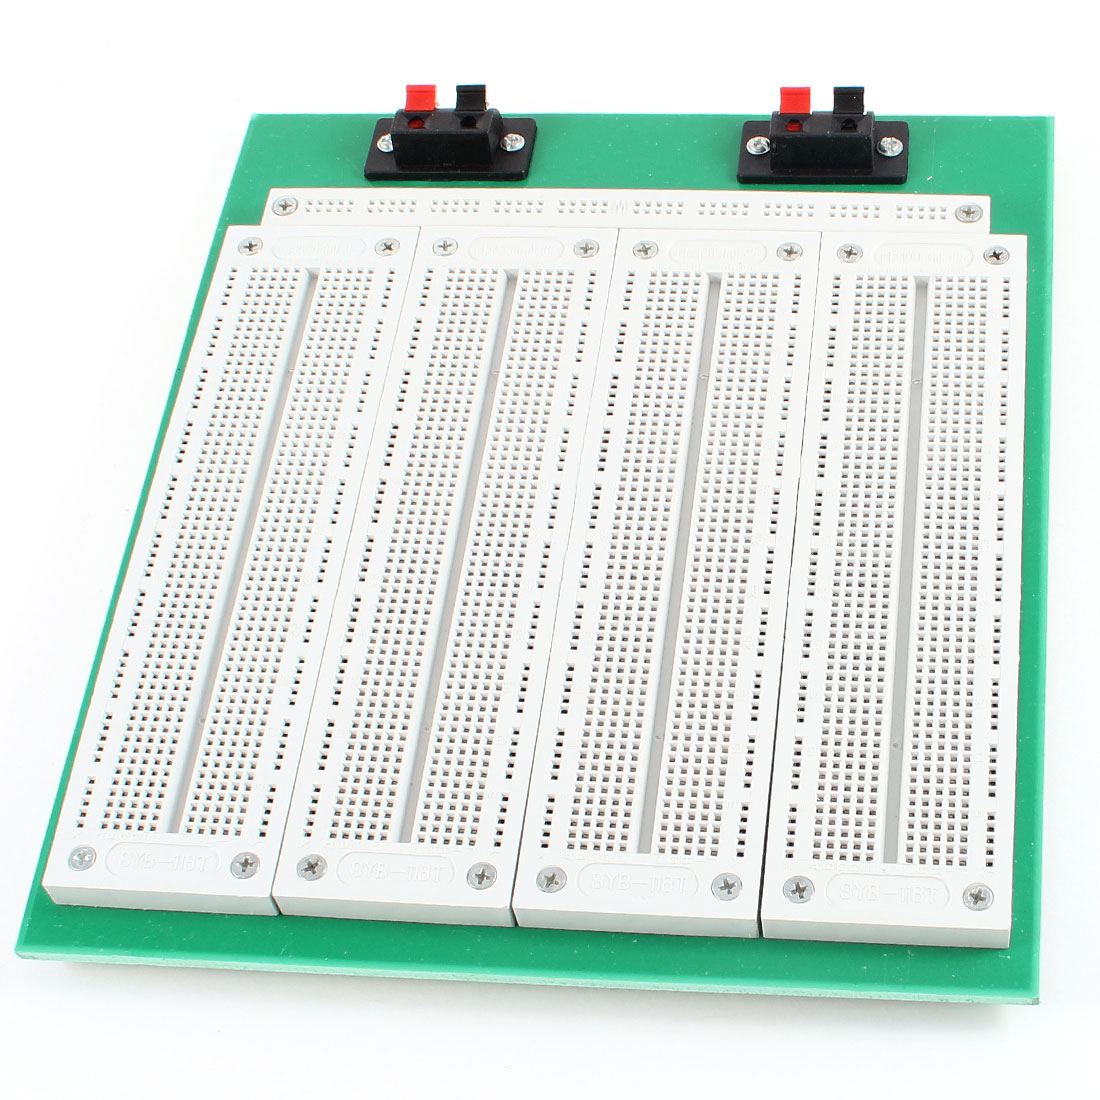 235mm x 200mm x 15mm 472 Tiepoint Electronic Circuit Solderless Breadboard